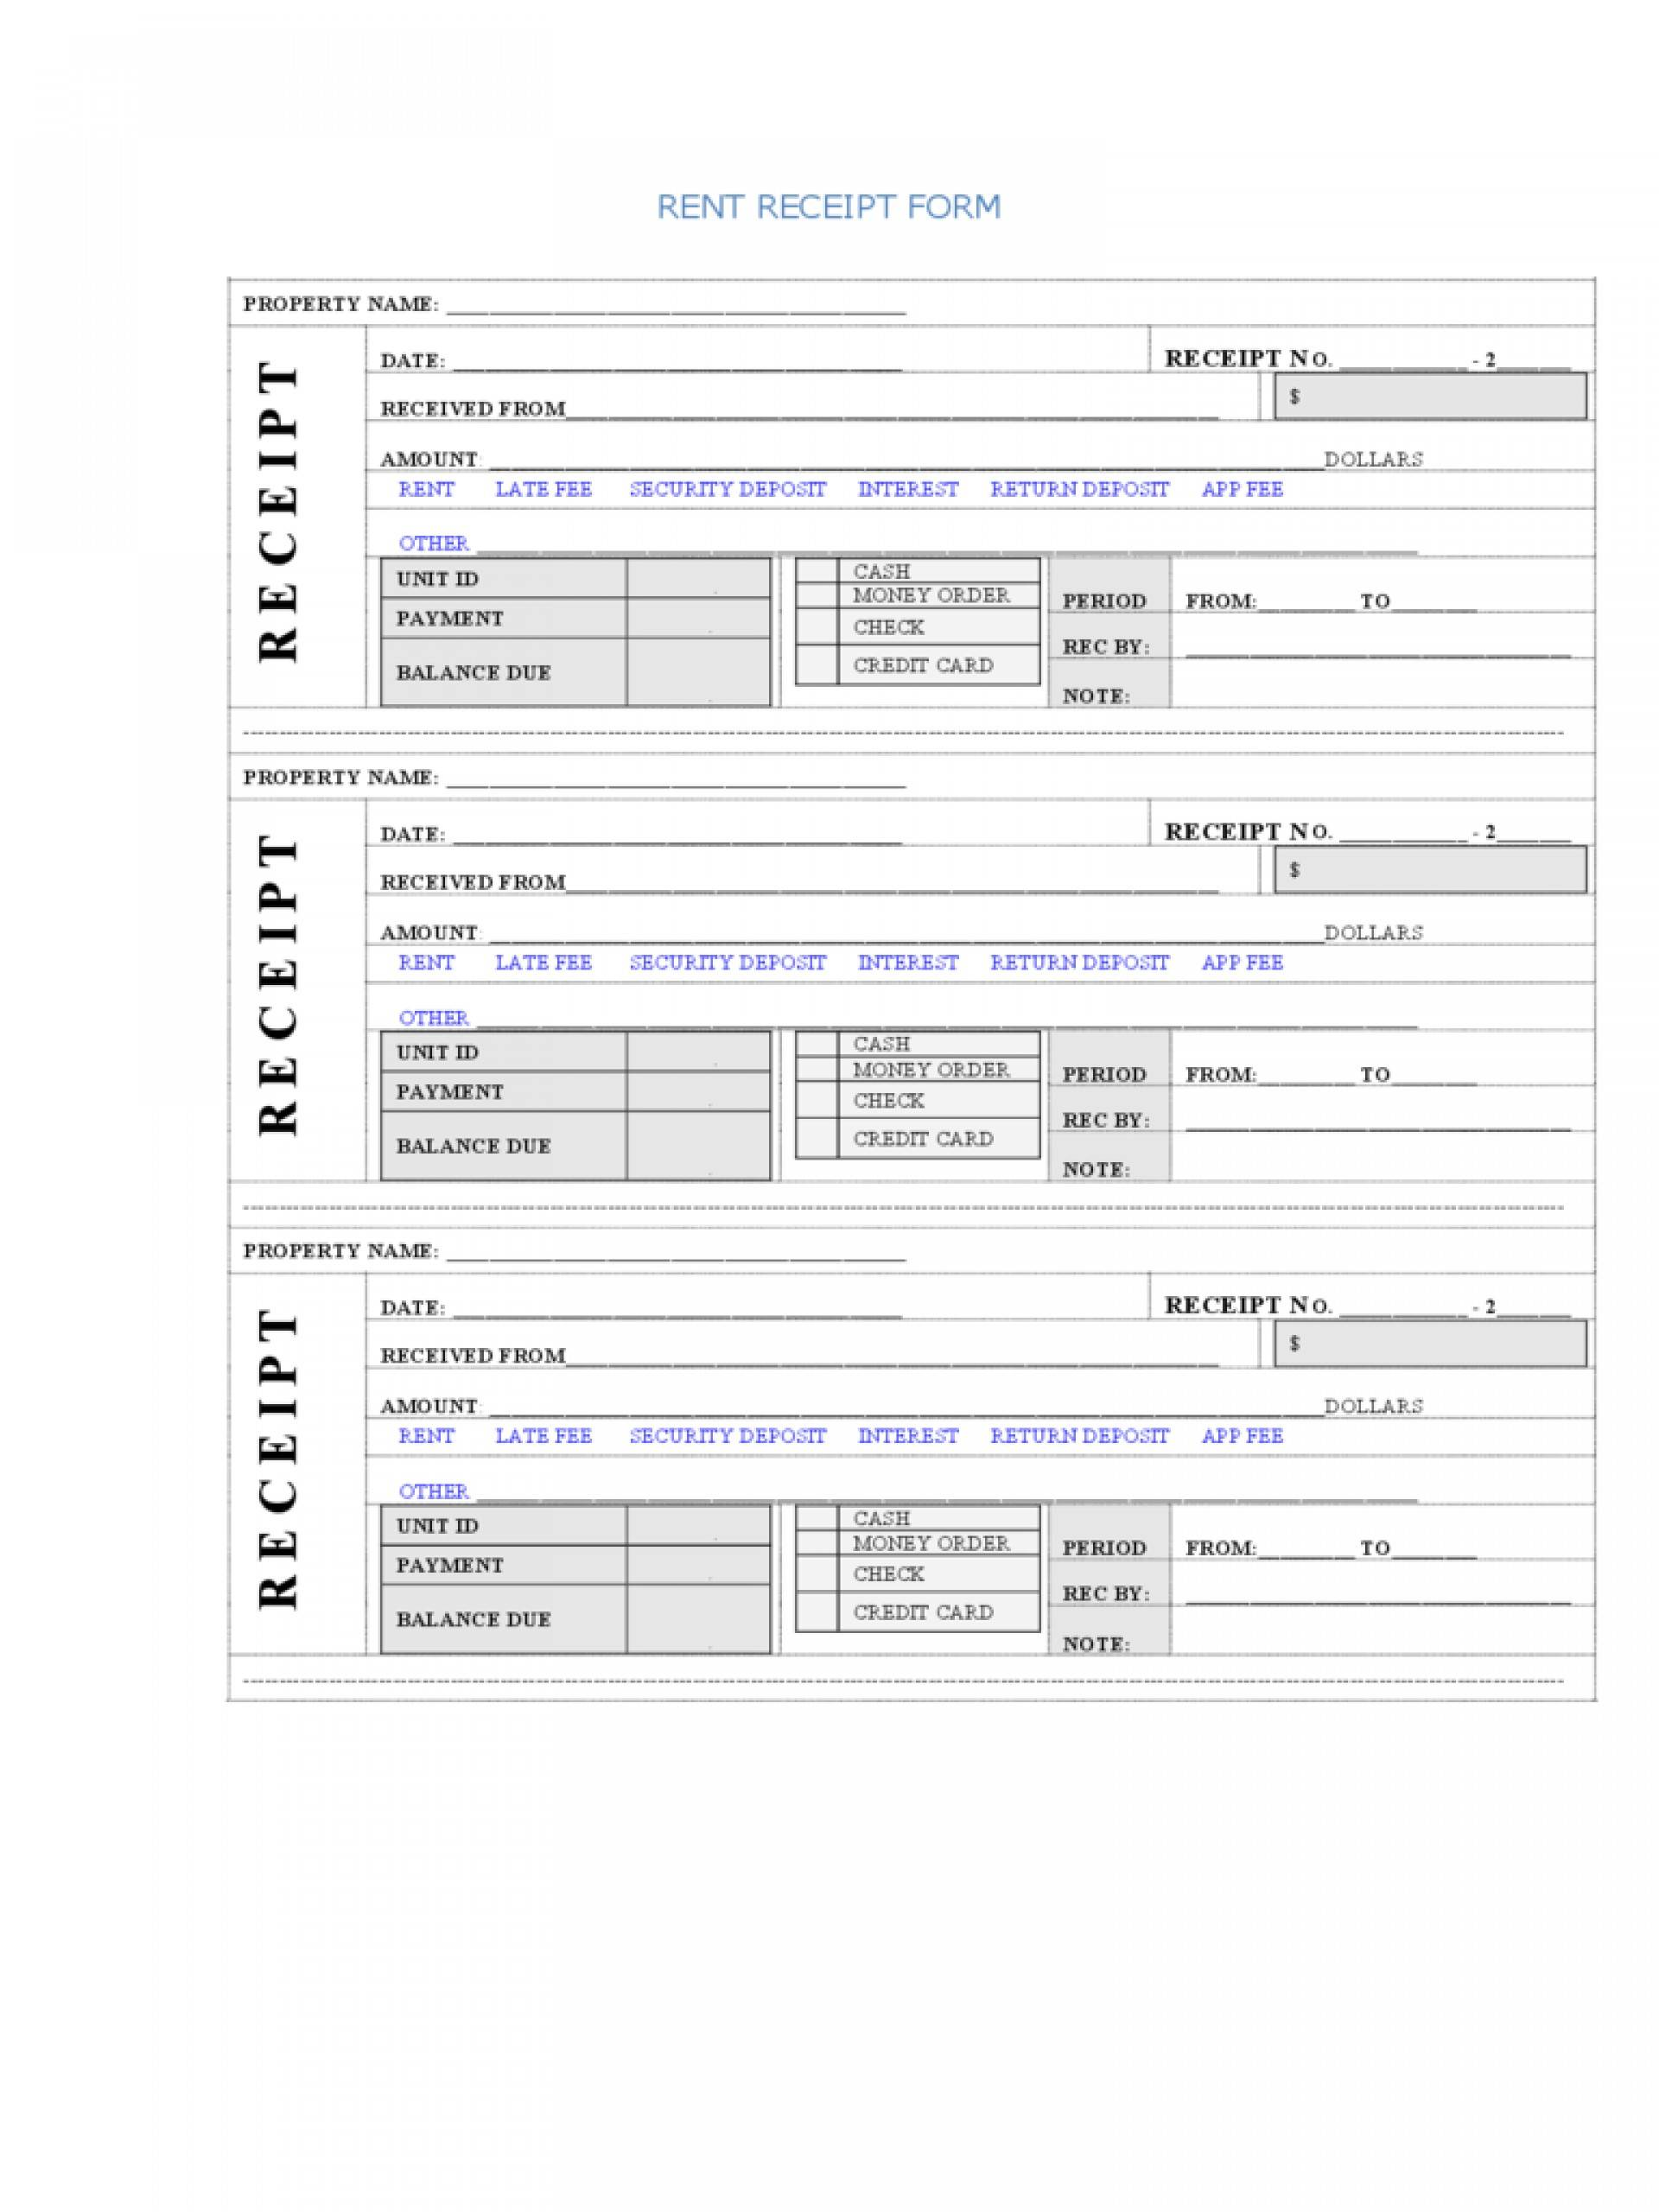 Rent Receipt Template Excel Free